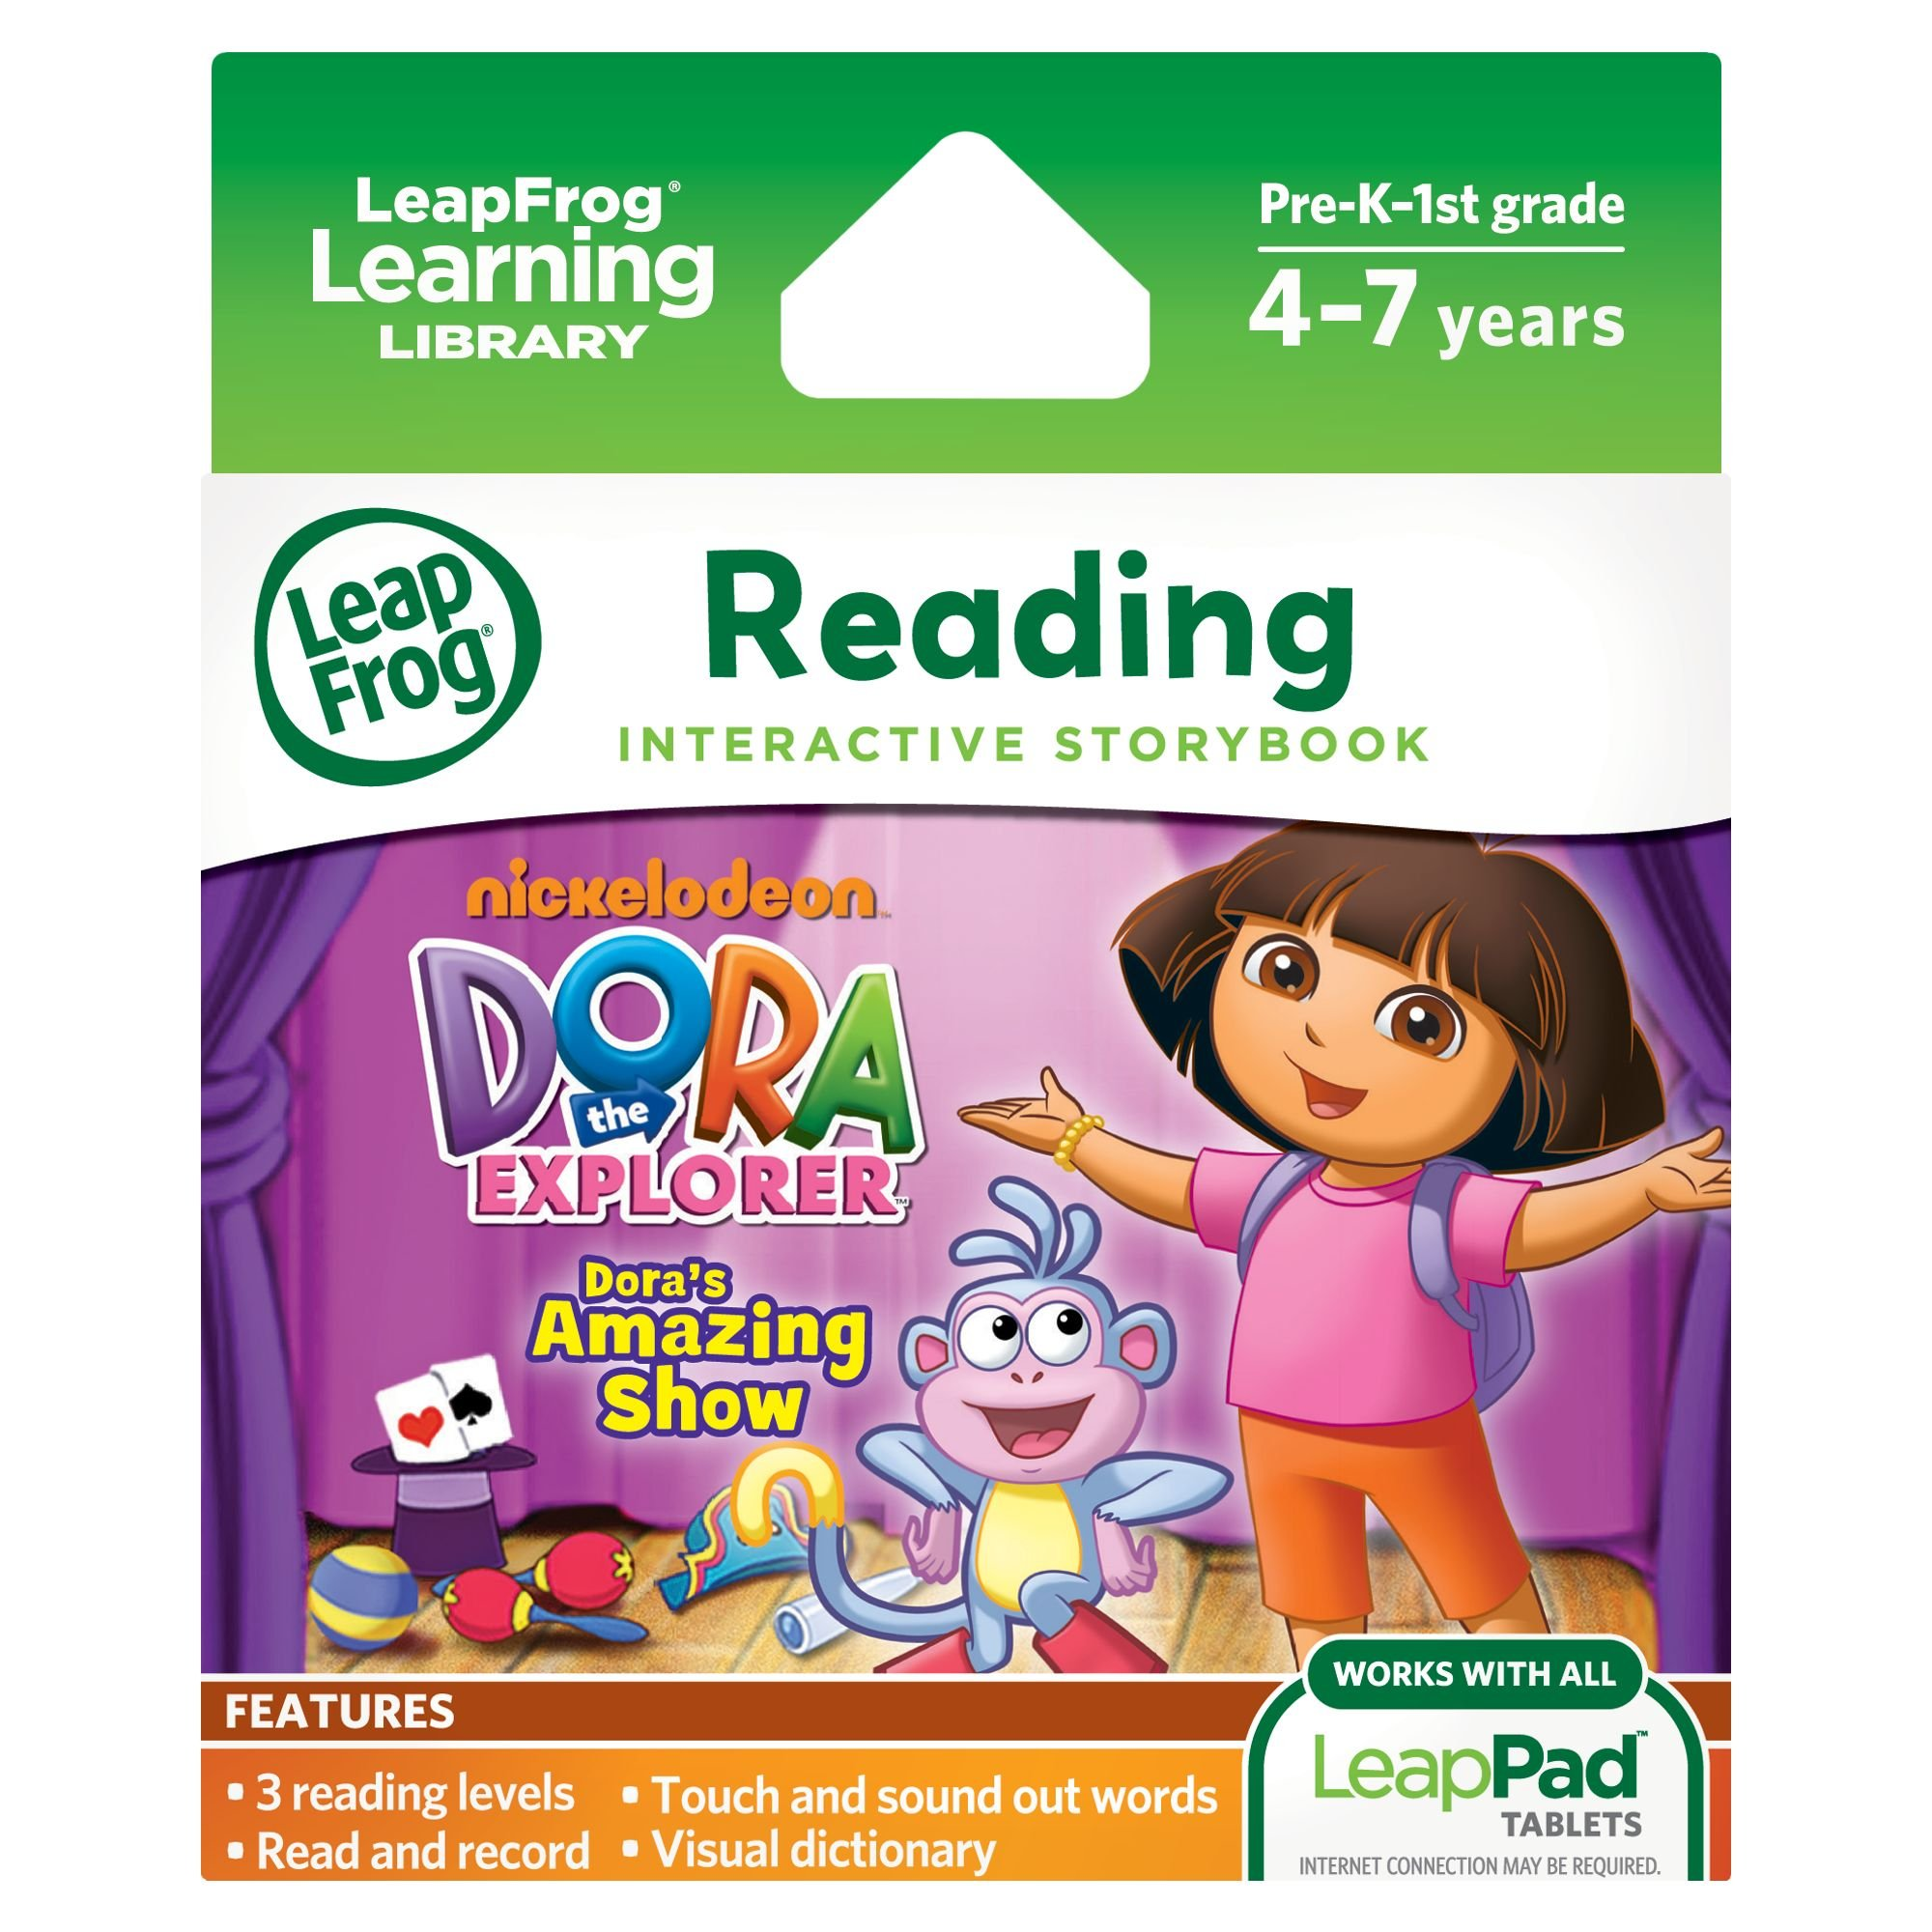 LeapFrog LeapPad Dora's Amazing Show Ultra eBook (works with all LeapPad tablets) by LeapFrog (Image #1)